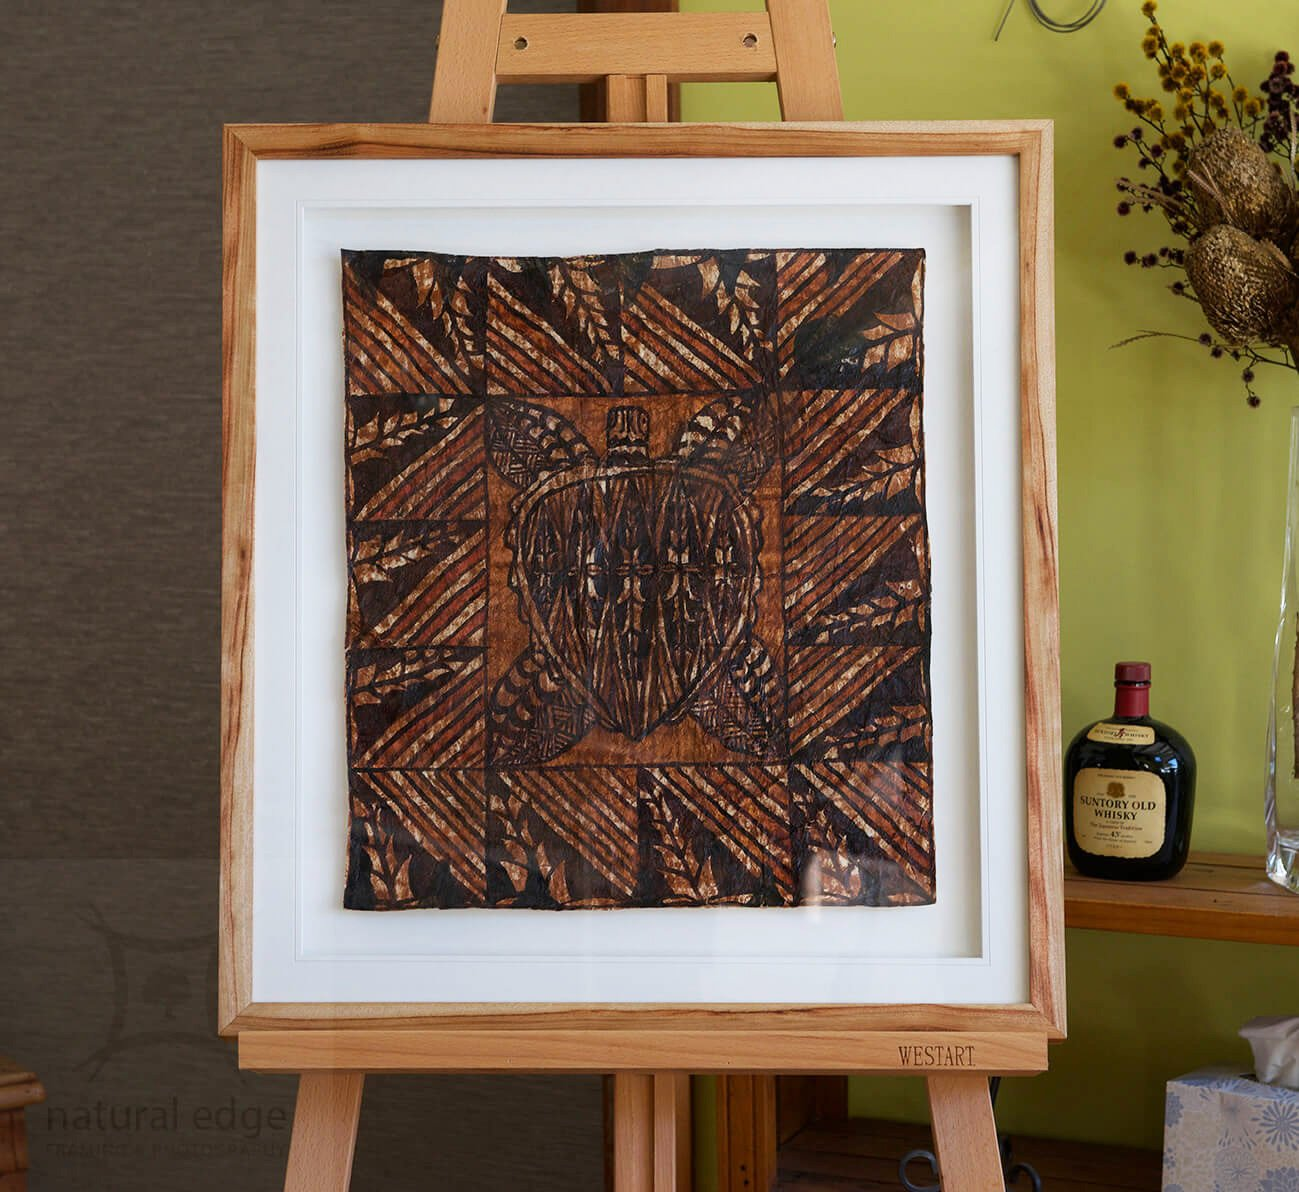 indigenous-turtle-art-on-bark-framed-as-a-floating-piece-in-a-straight-edge-camphor-laurel-frame